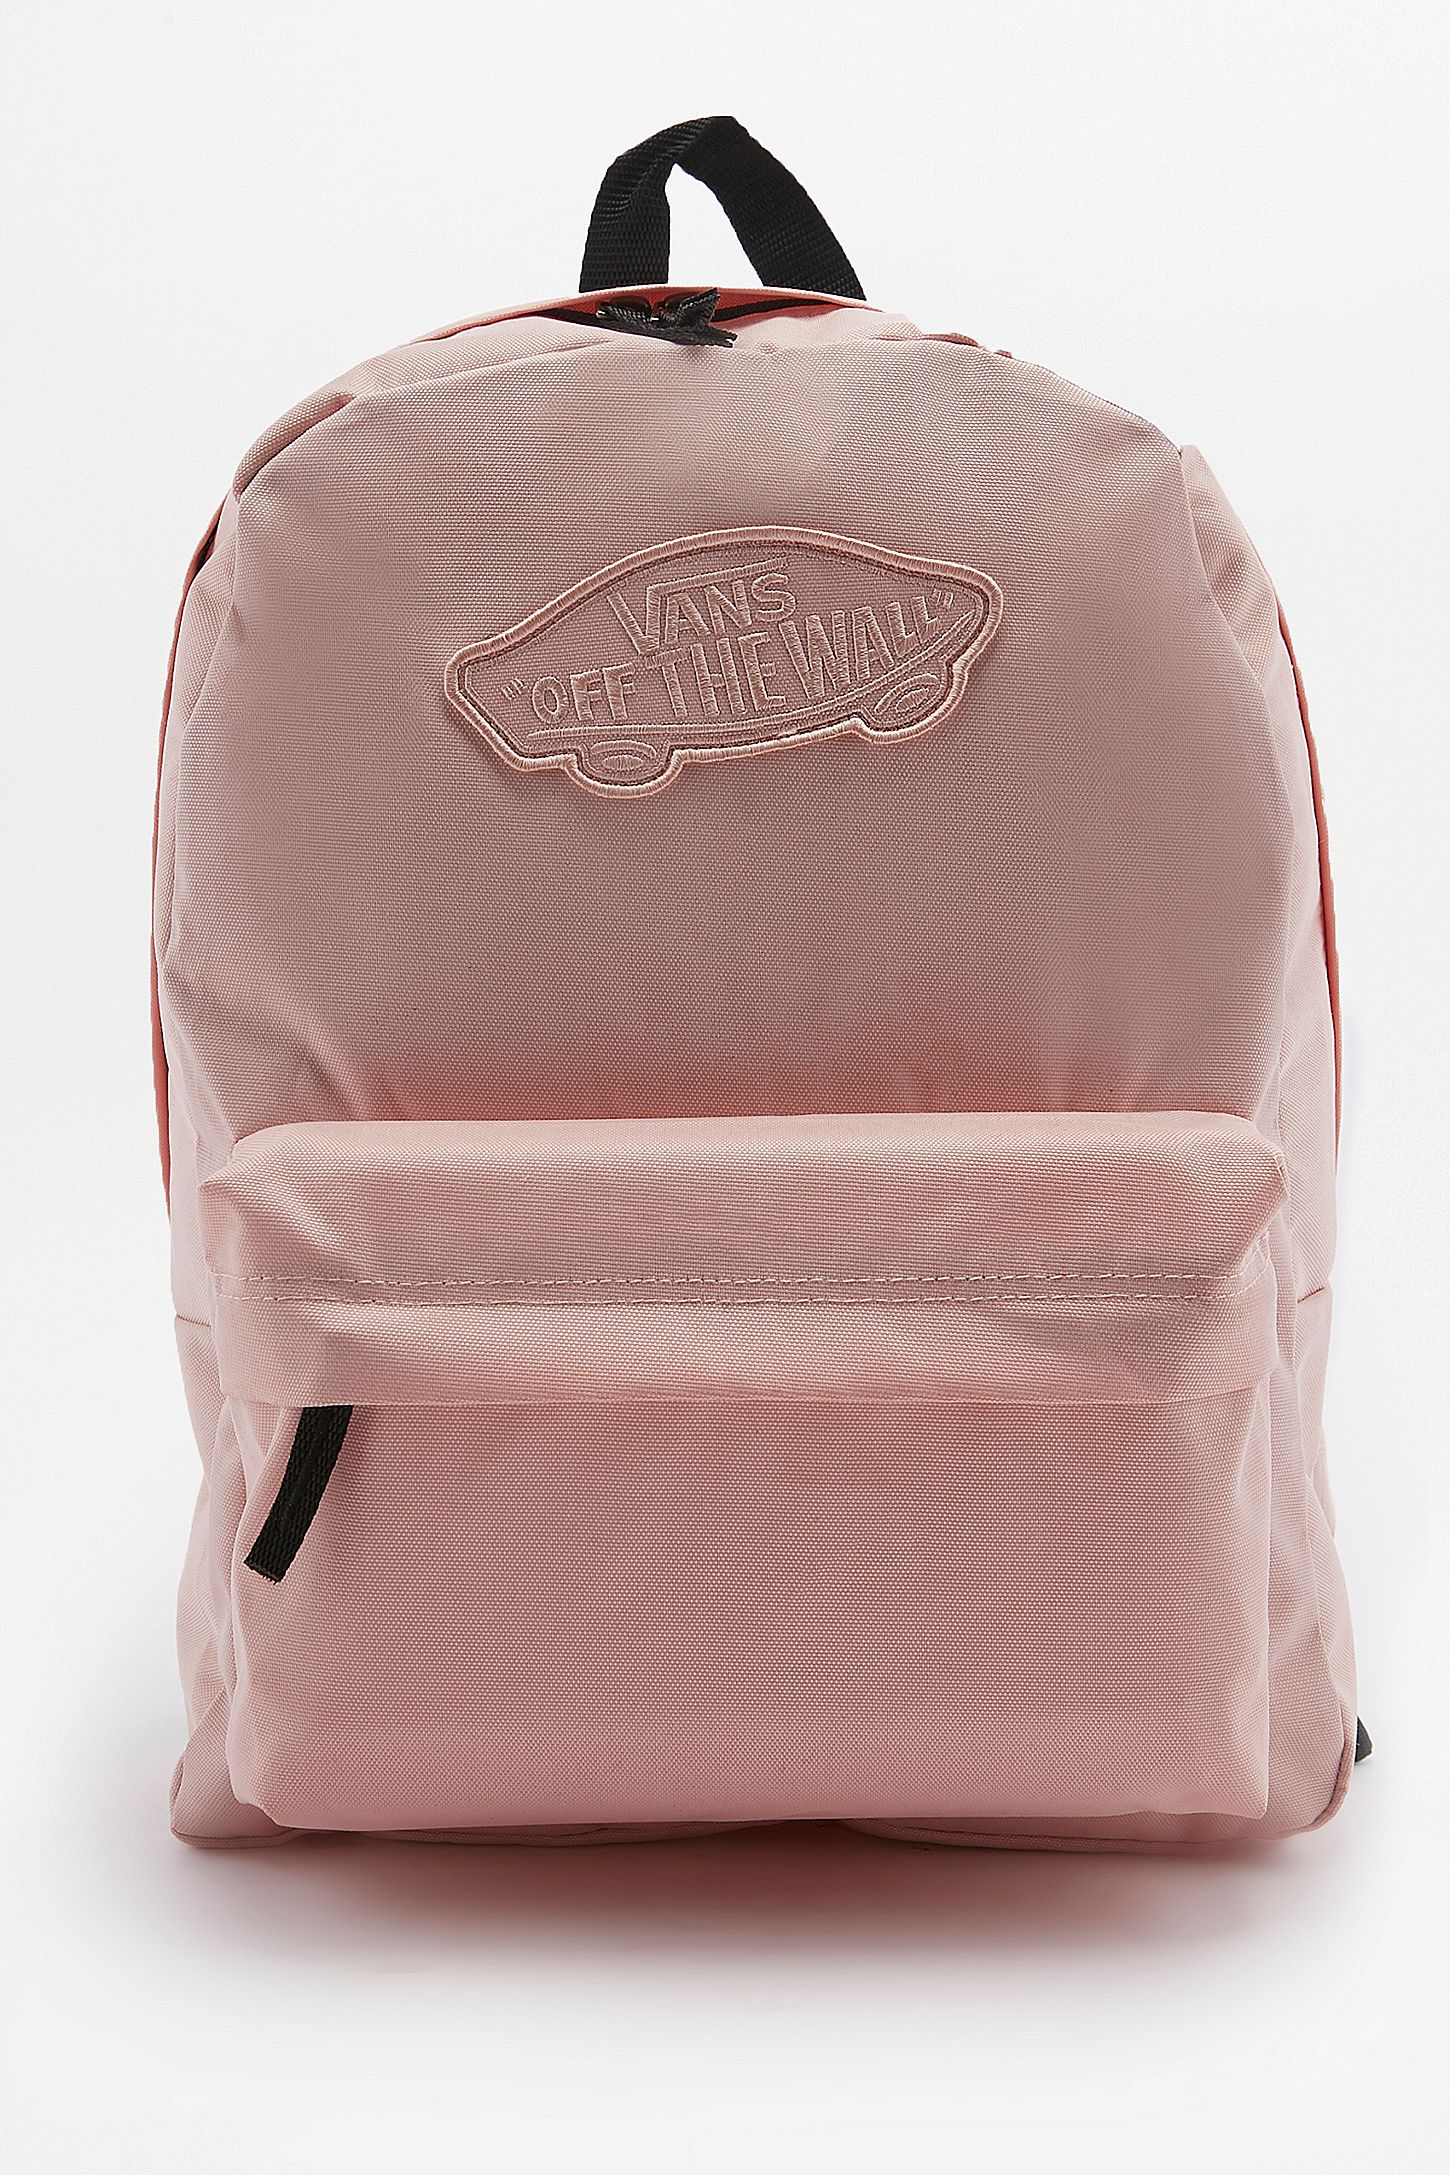 5e71028bc083 Vans Realm Pink Blossom Backpack